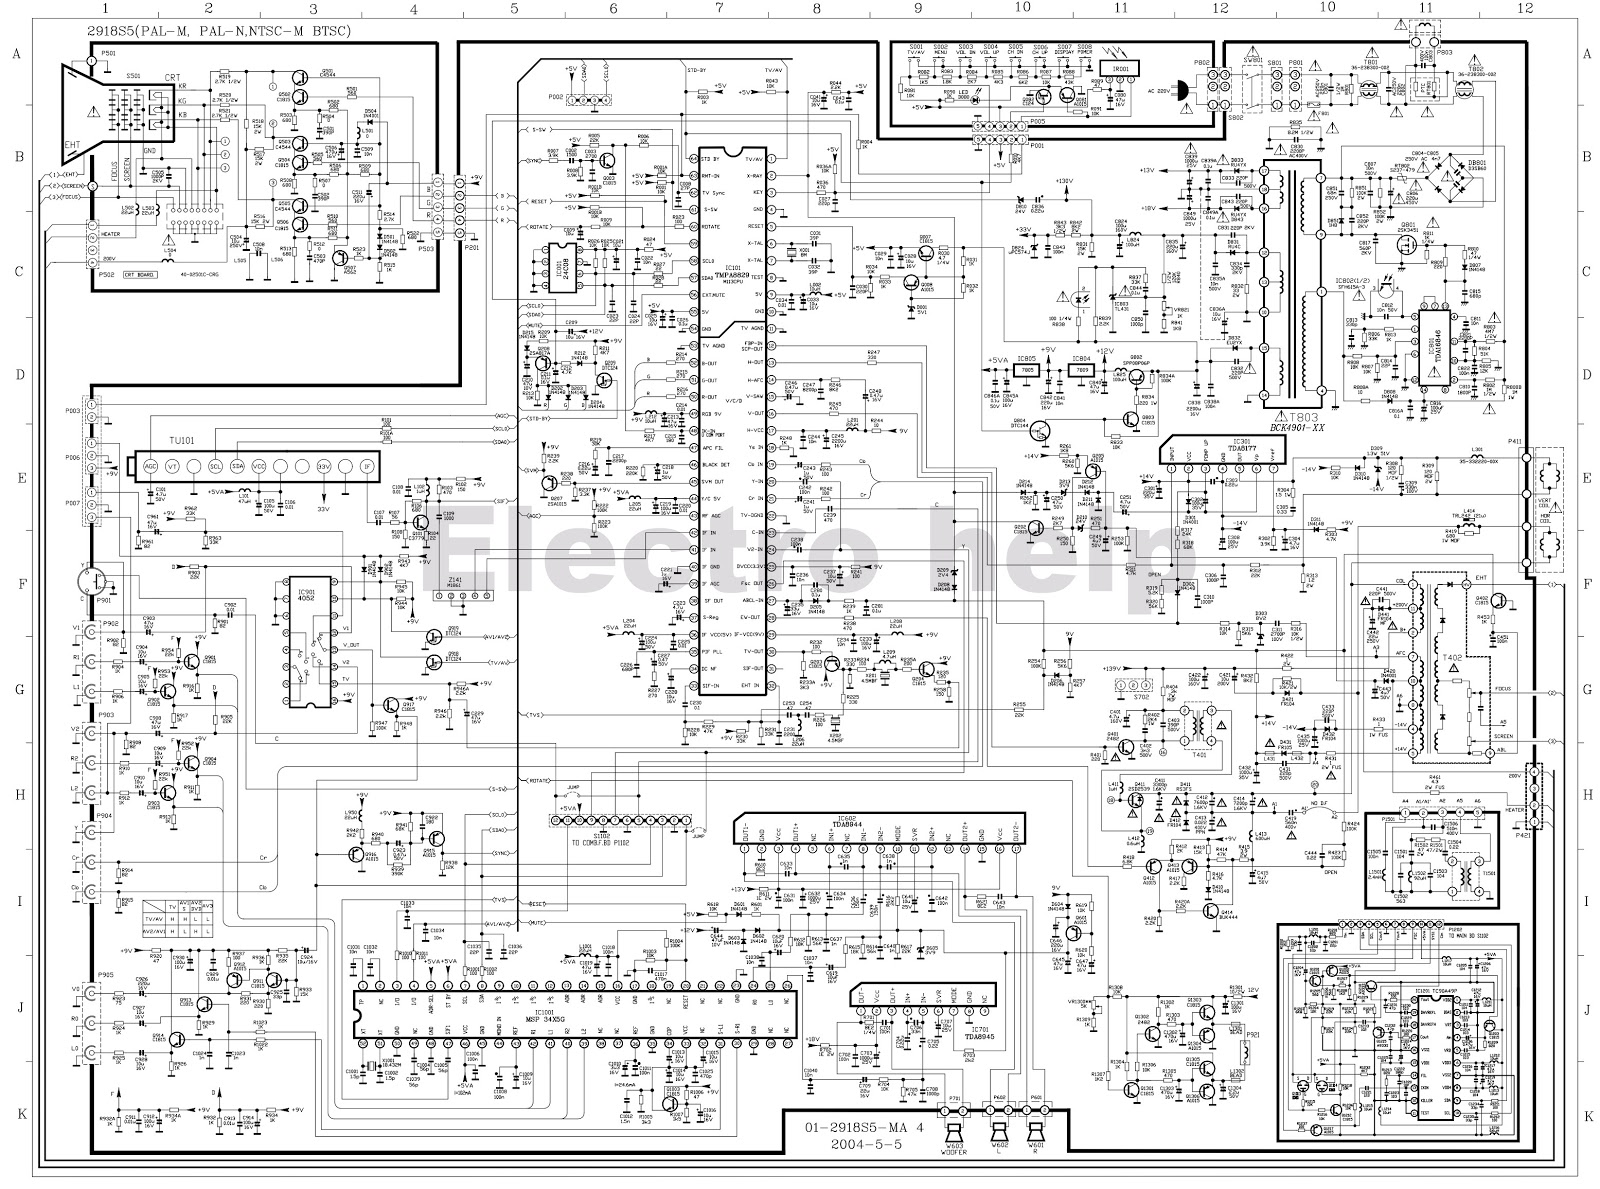 sanyo tv wiring diagram wiring diagram expert sanyo tv wiring diagram [ 1600 x 1189 Pixel ]